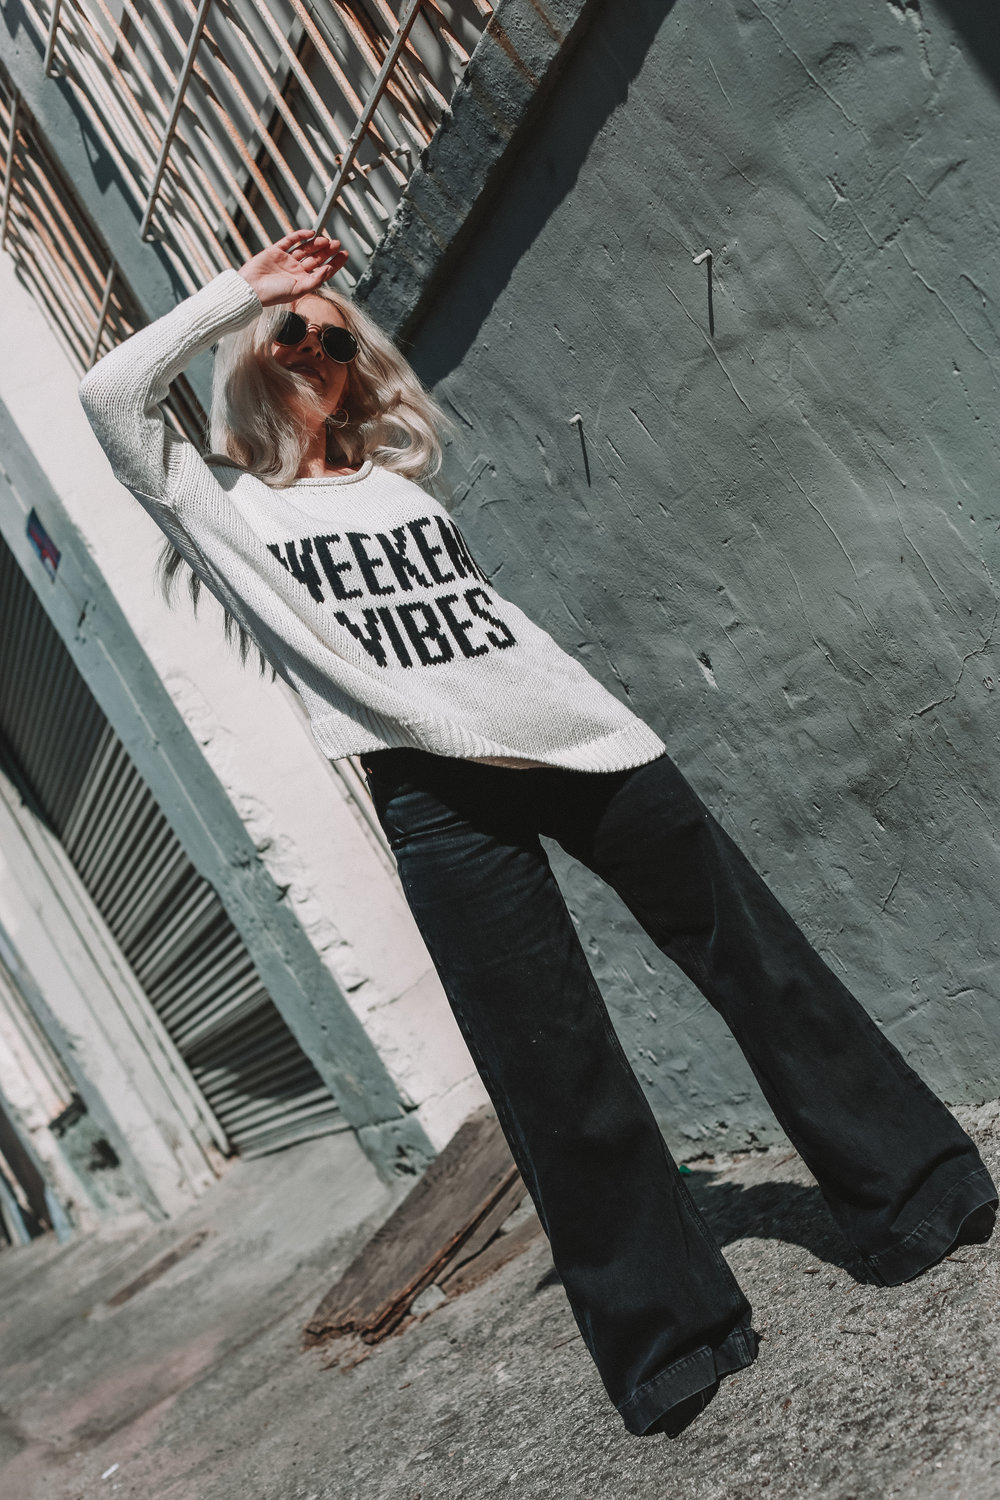 mdw sale_river island_weekend vibes_cozy sweater_cozy sweatshirt_wide legged pants_blonde blogger_blonde hair_icy blonde hair_icy blonde blogger_la